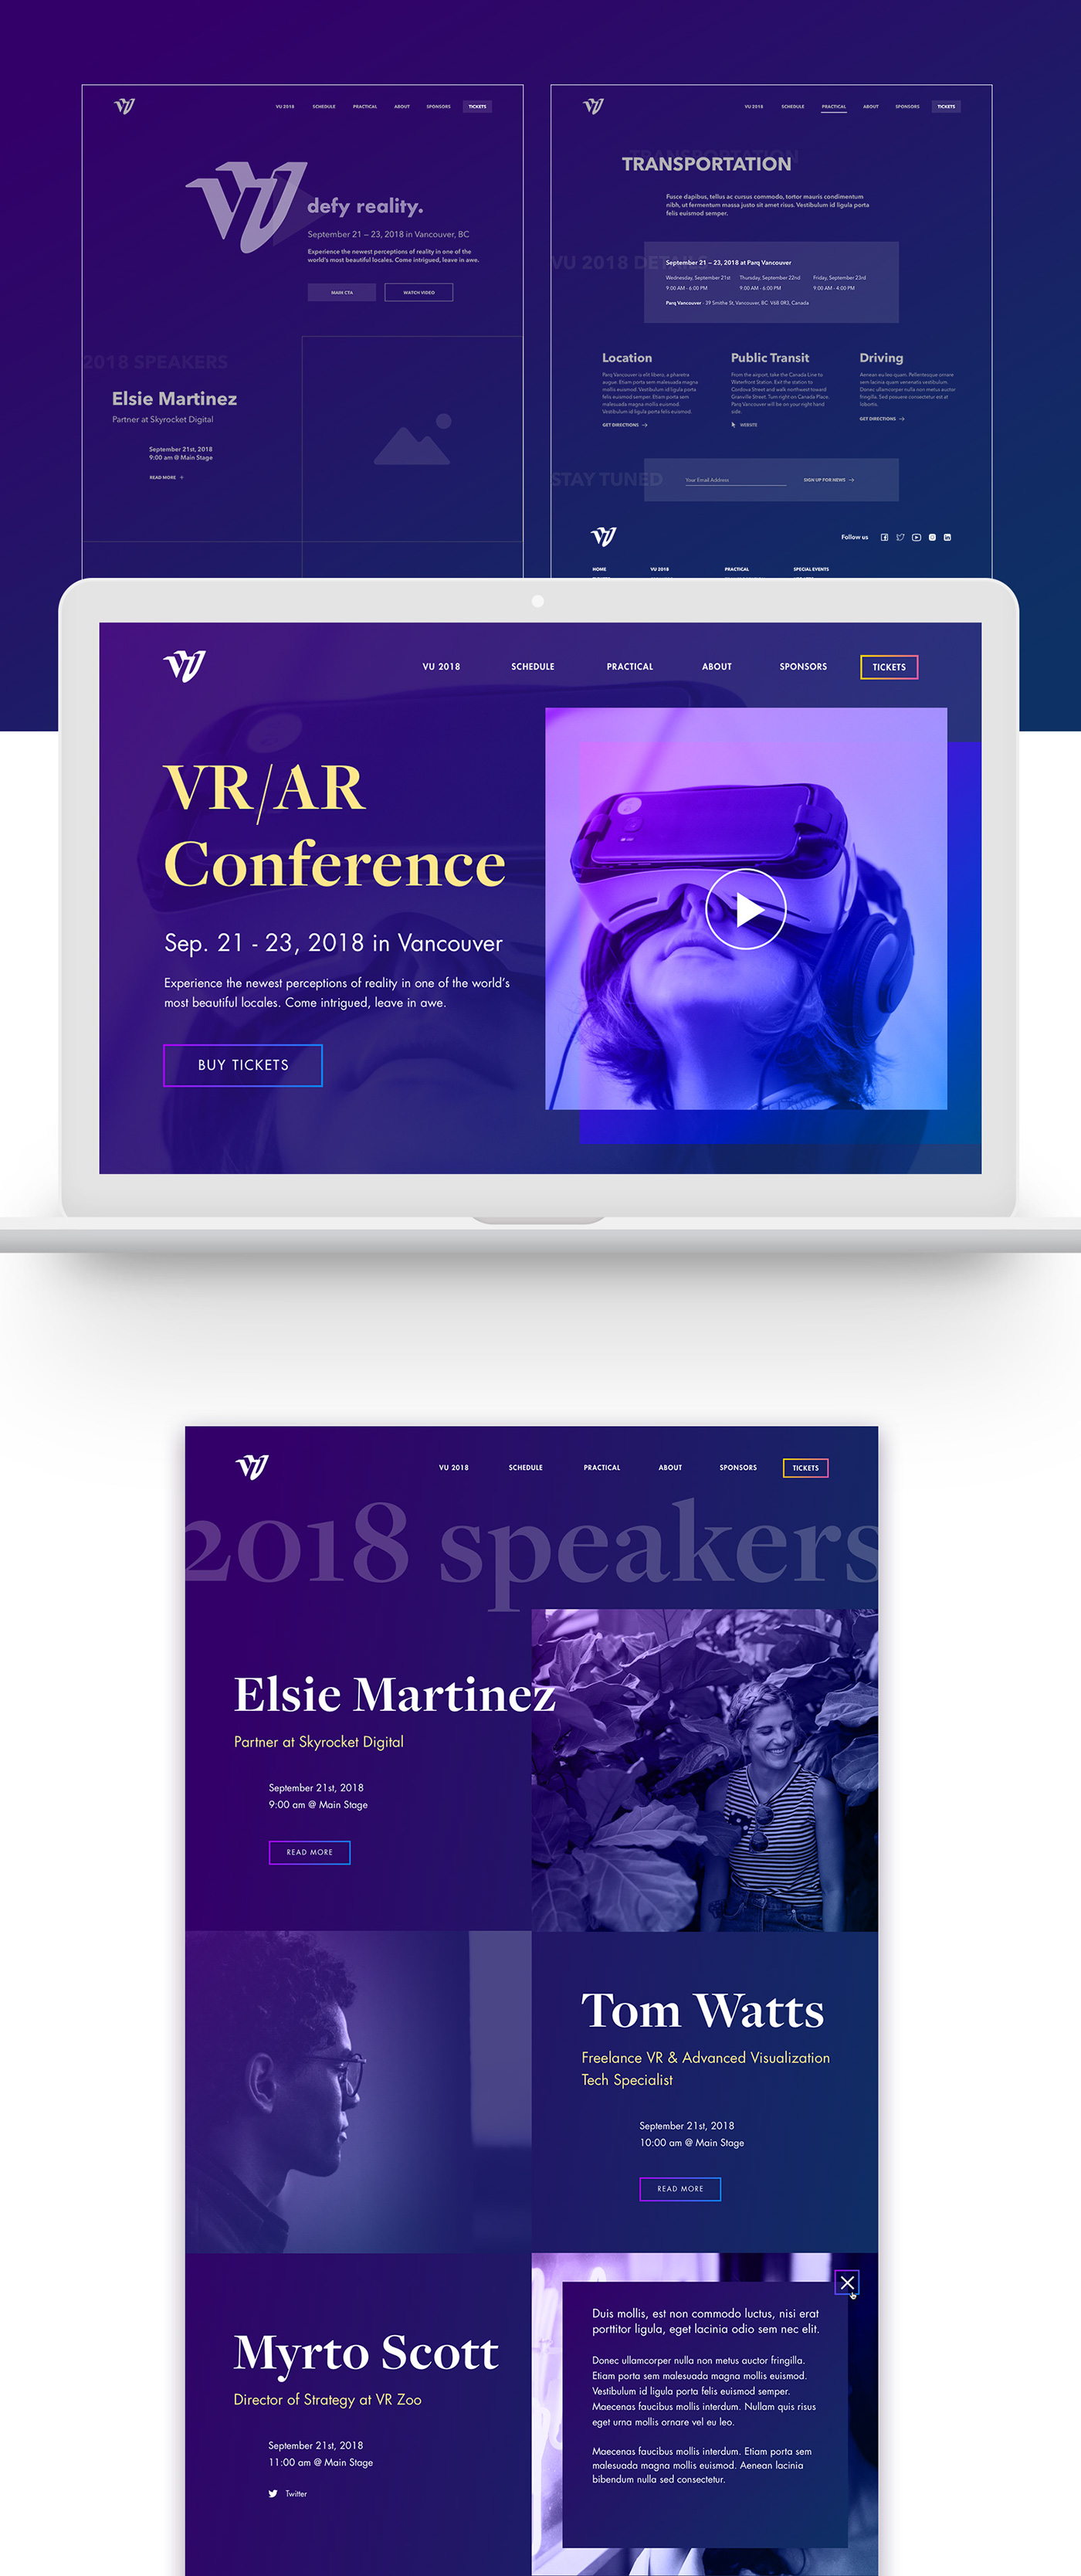 visual identity branding  vr Virtual reality AR augmented reality conference logo mr Mixed Reality